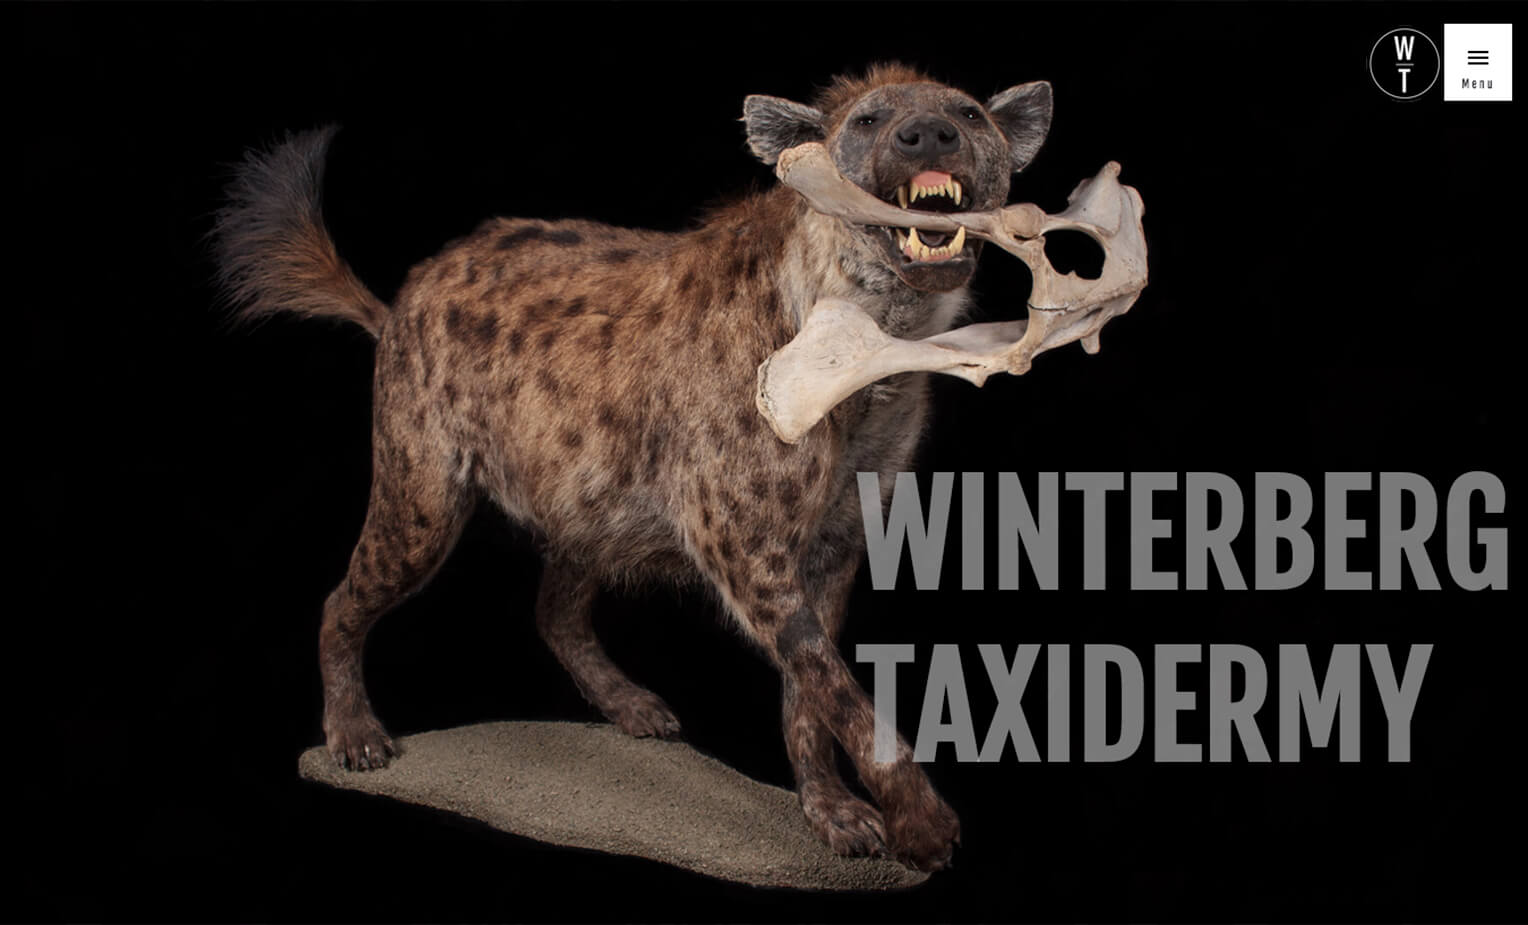 Website Design and photography for Taxidermist